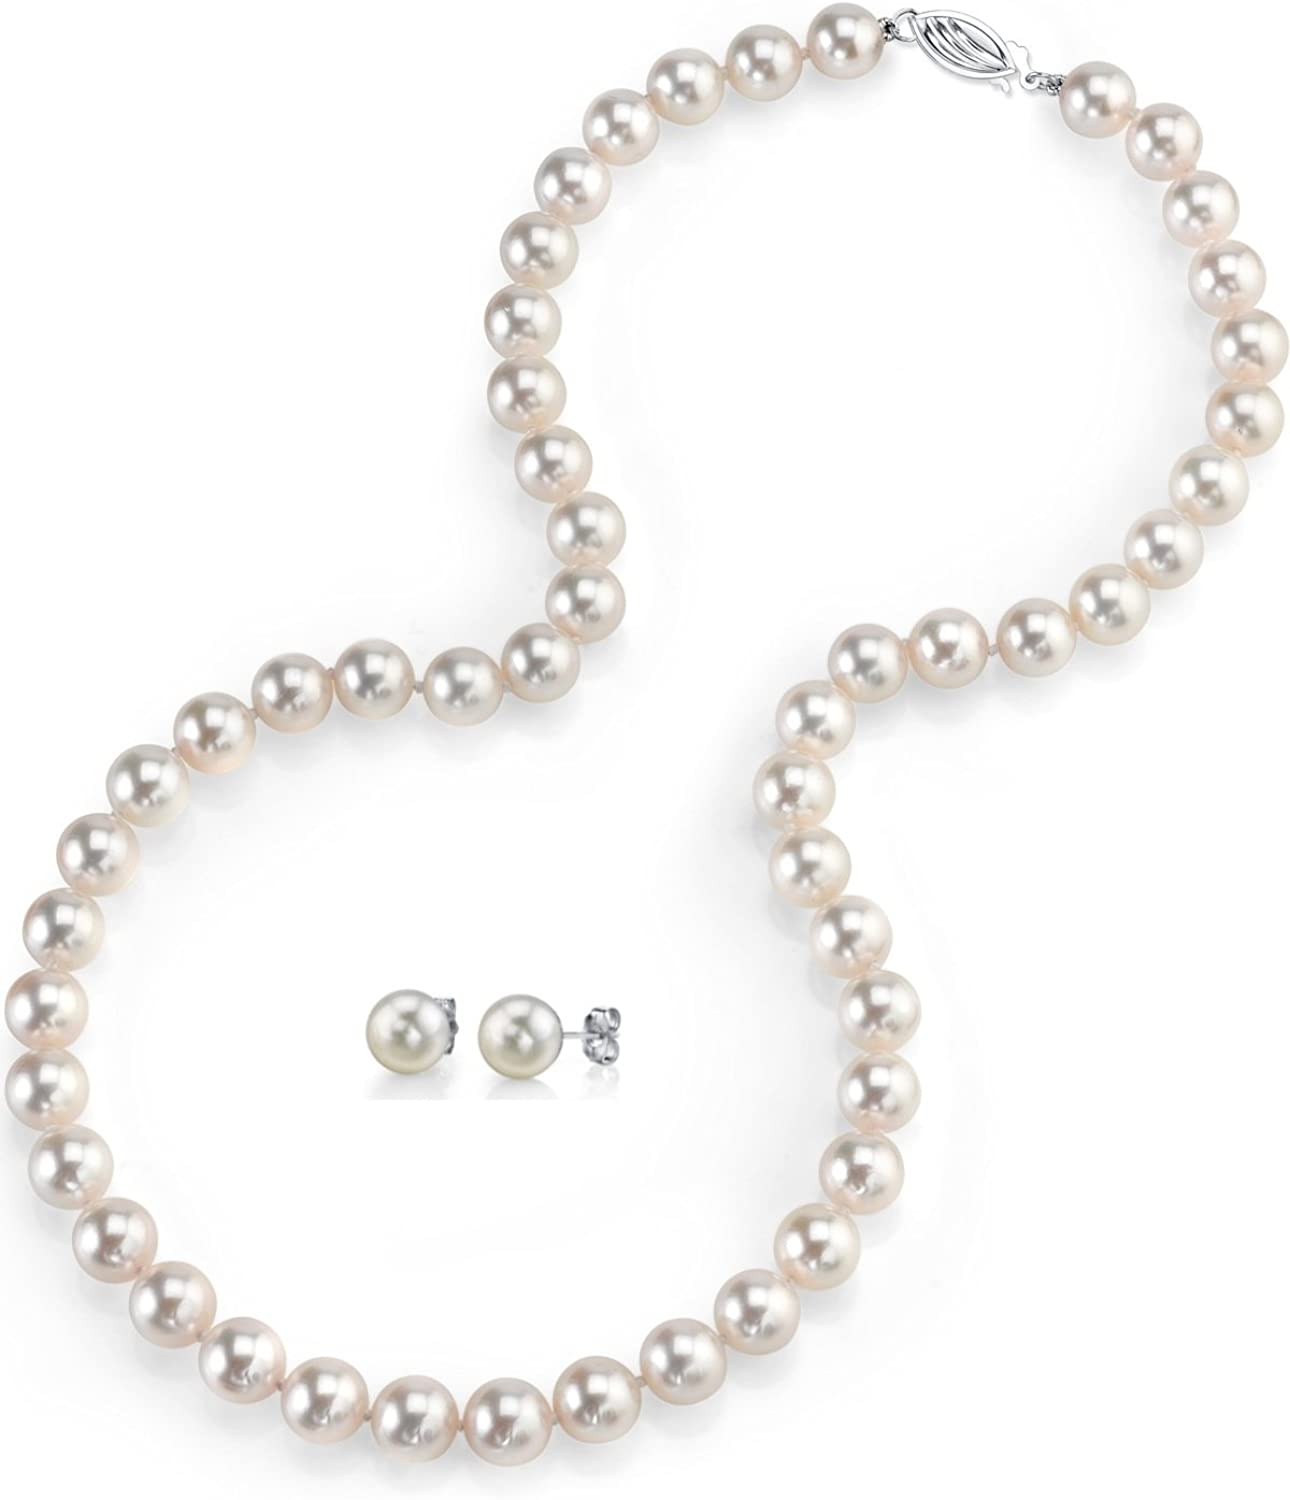 THE PEARL SOURCE 14K Gold AAAA Quality Round White Freshwater Cultured Pearl Necklace & Earrings Set in 18